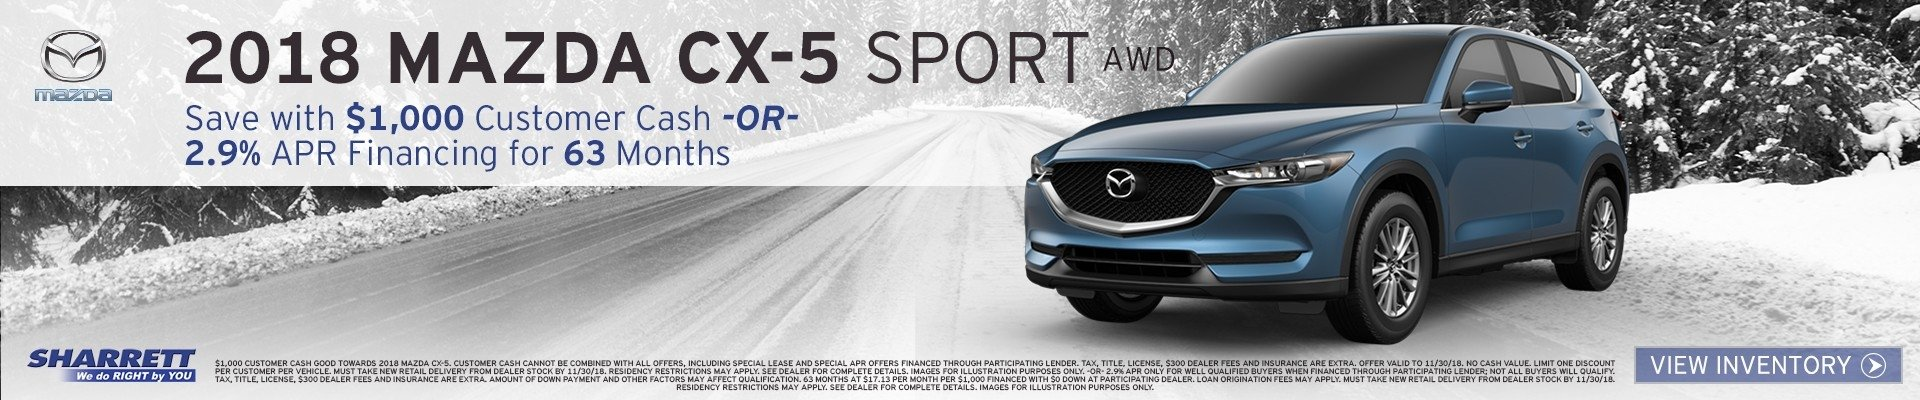 Get 2.9% APR financing for 63 months on a new 2018 Mazda CX-5 at Sharrett Mazda